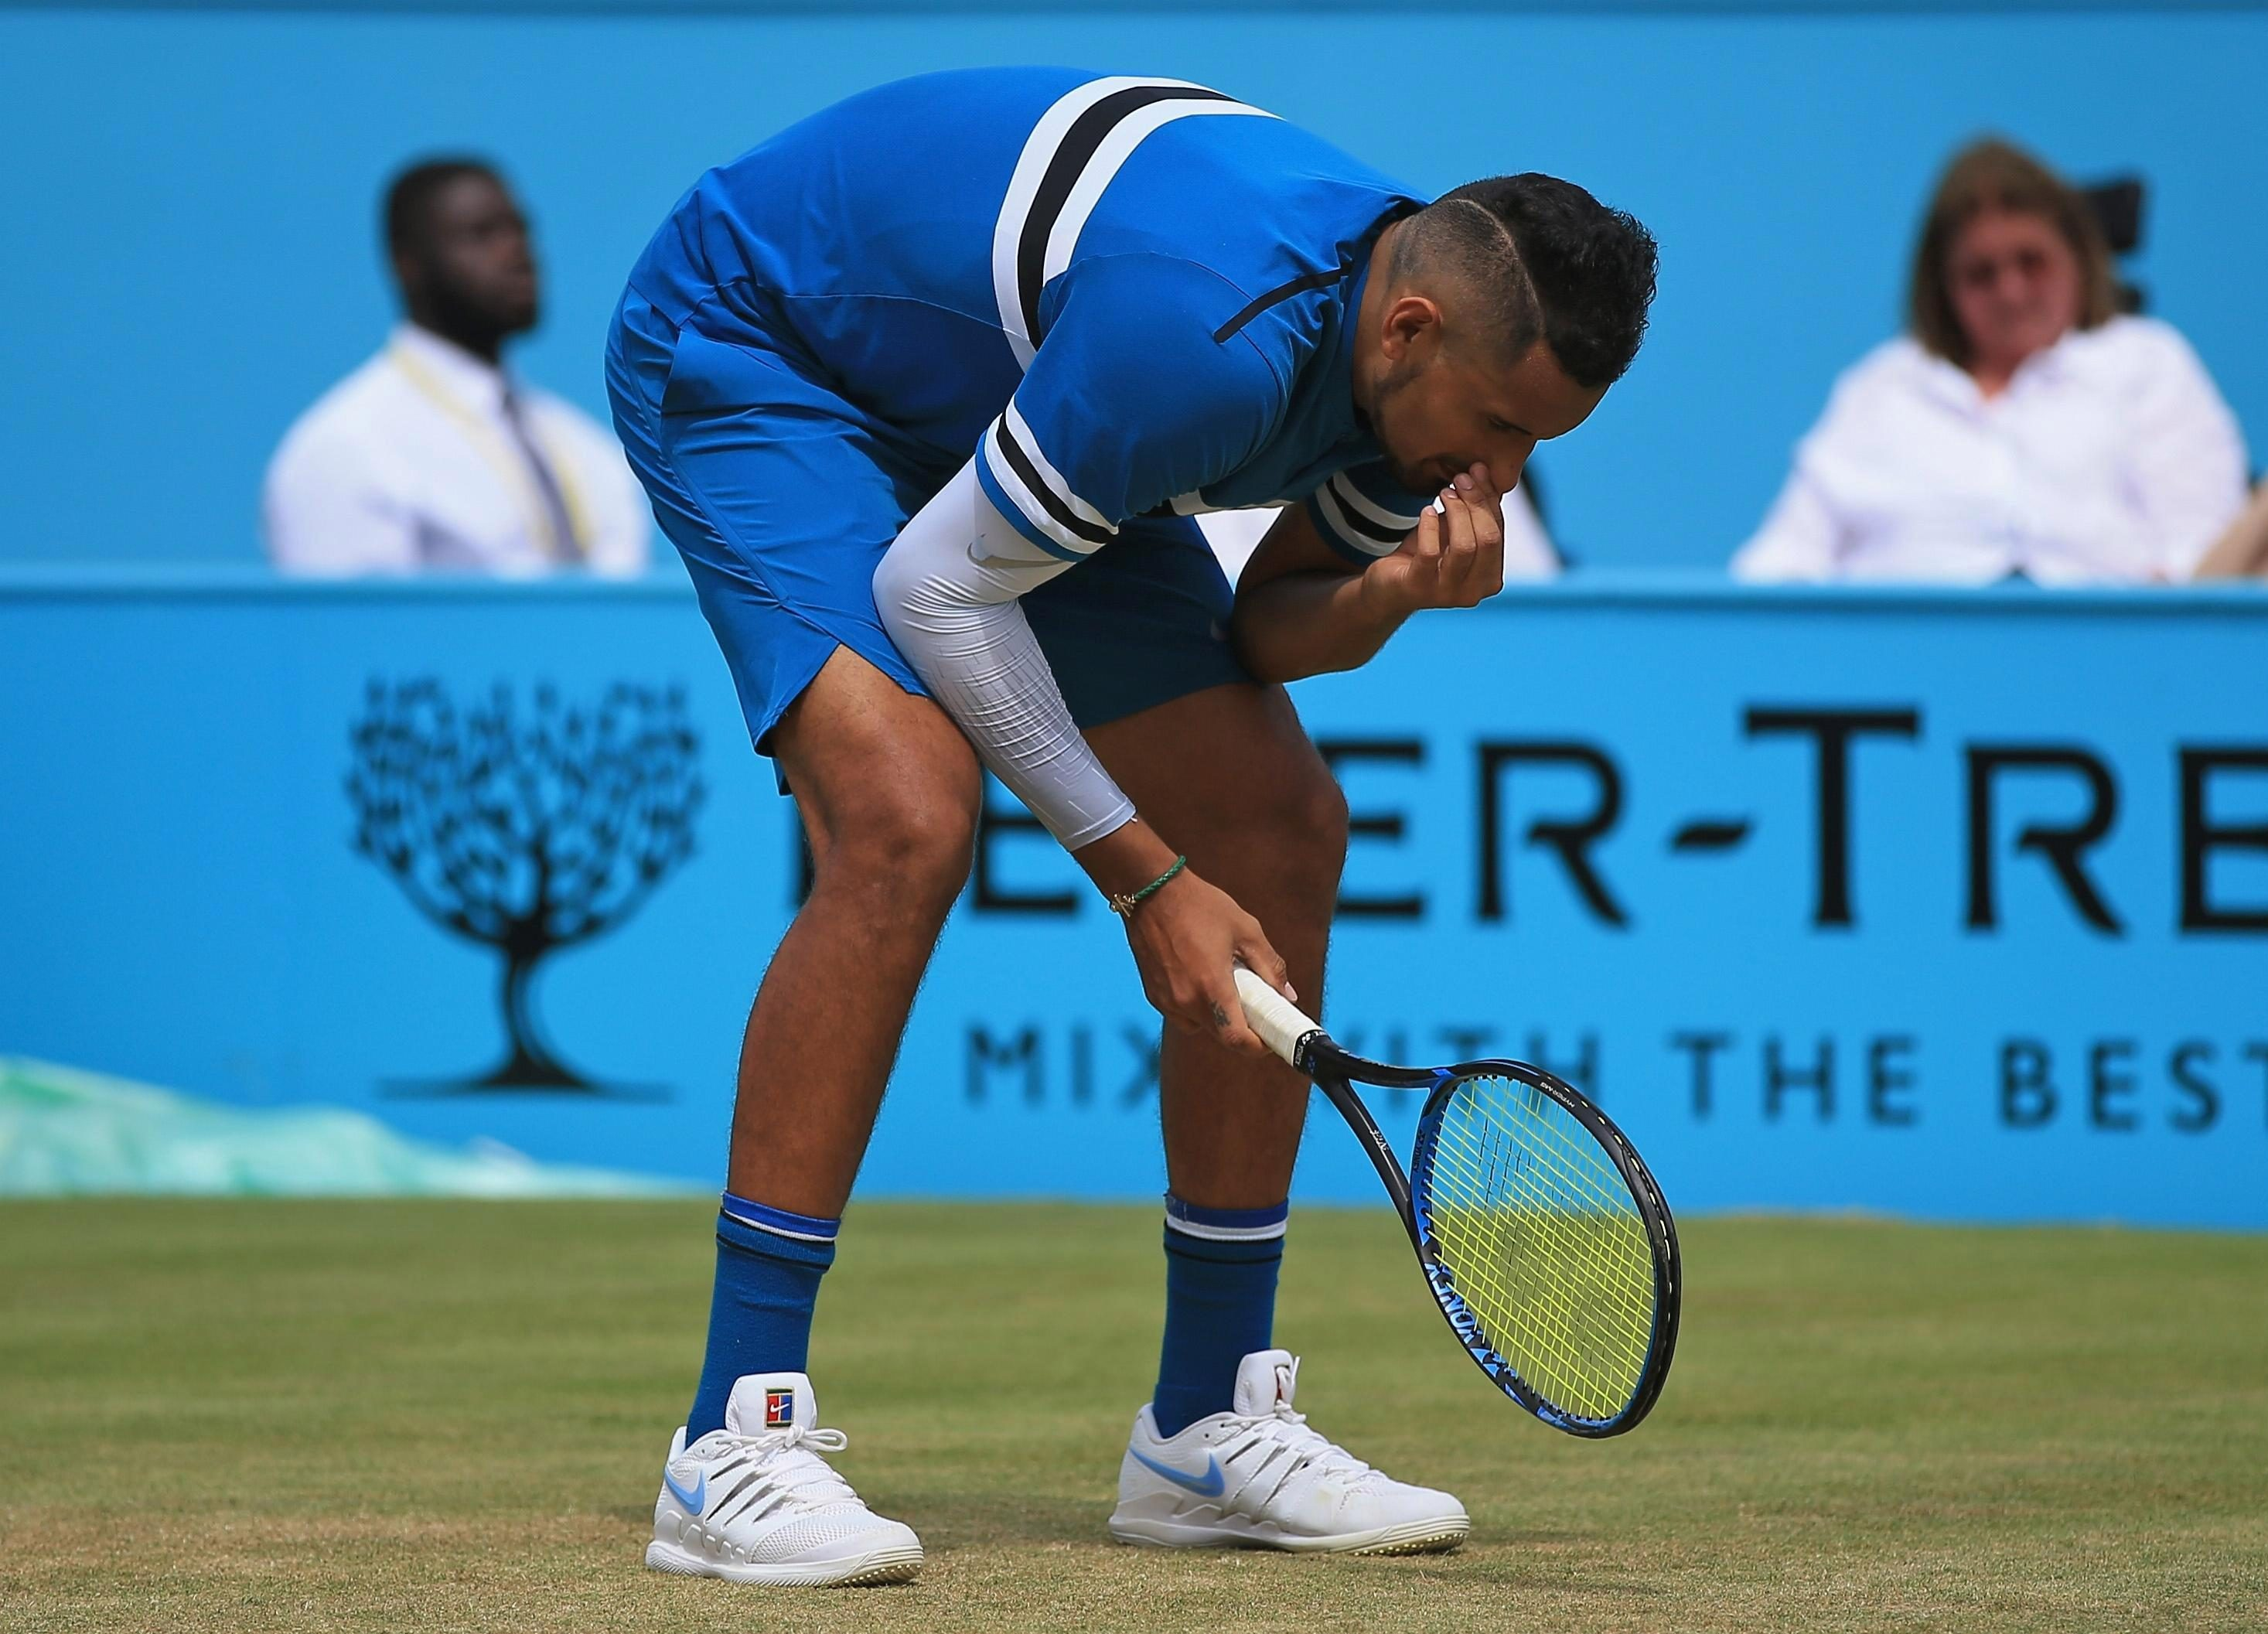 Kyrgios was beaten by Marian Cilic in the Queens semi-final